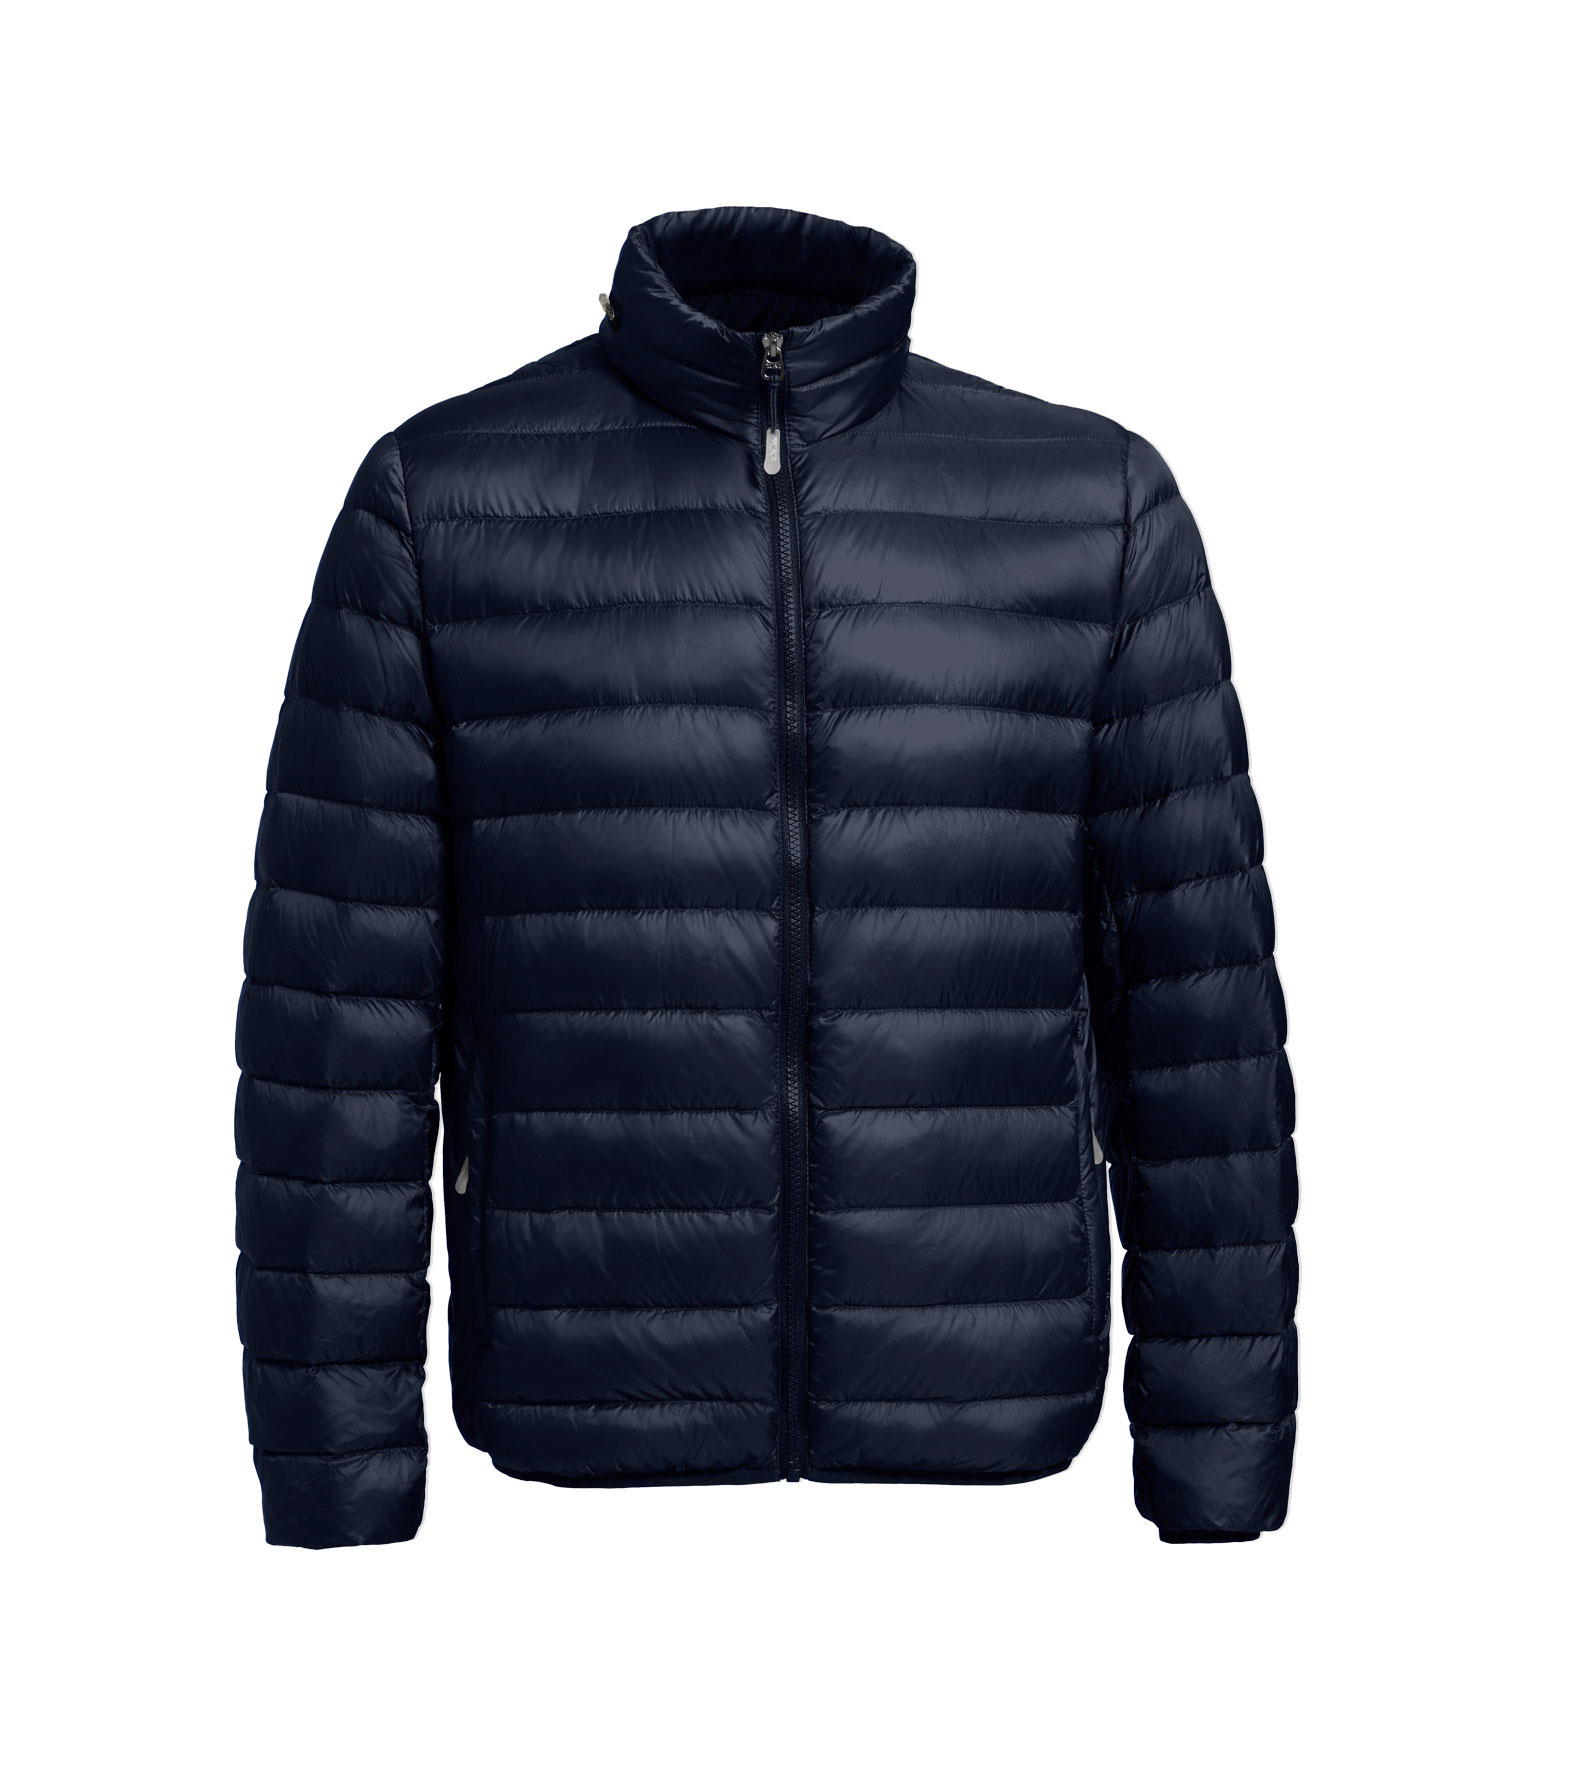 Tumi Mens Packable Travel Puffer Jacket